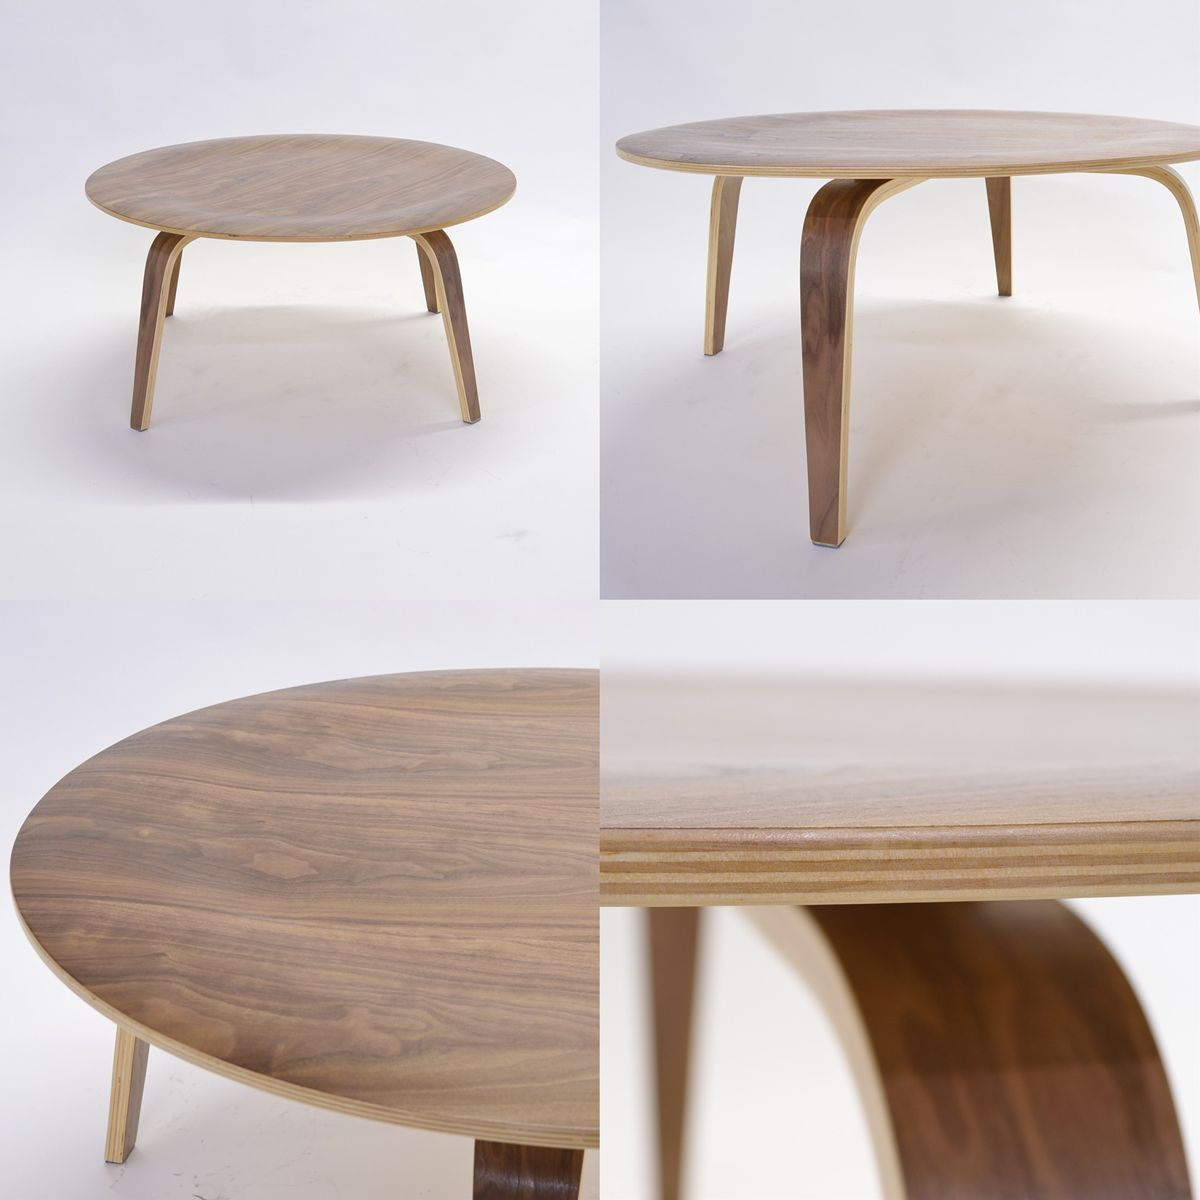 Chaoscollection rakuten global market goes to ctw for Eames style coffee table